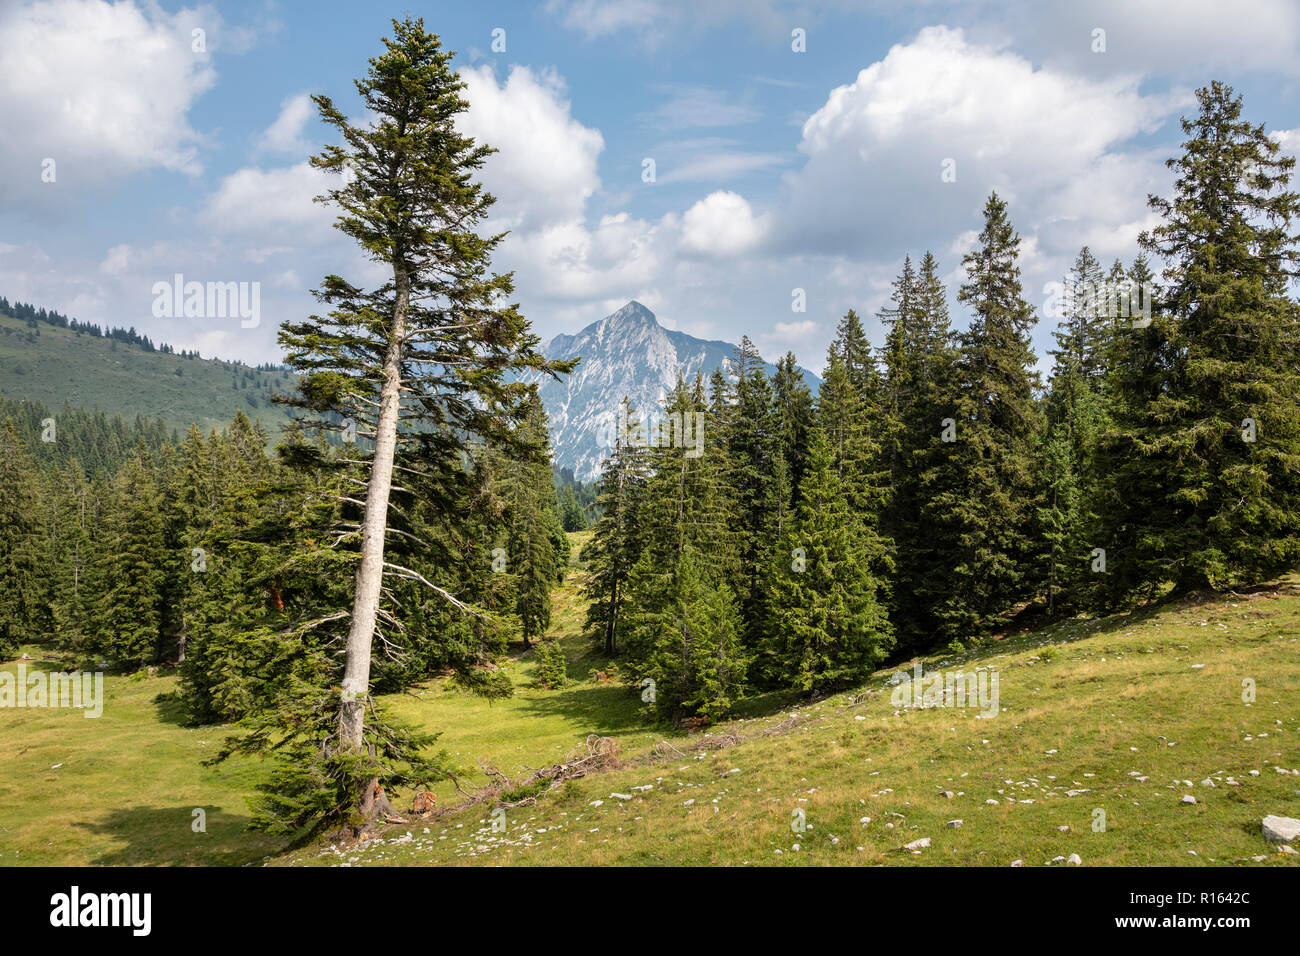 View from Postalm scenic walk, near Strobl, Austria - Stock Image